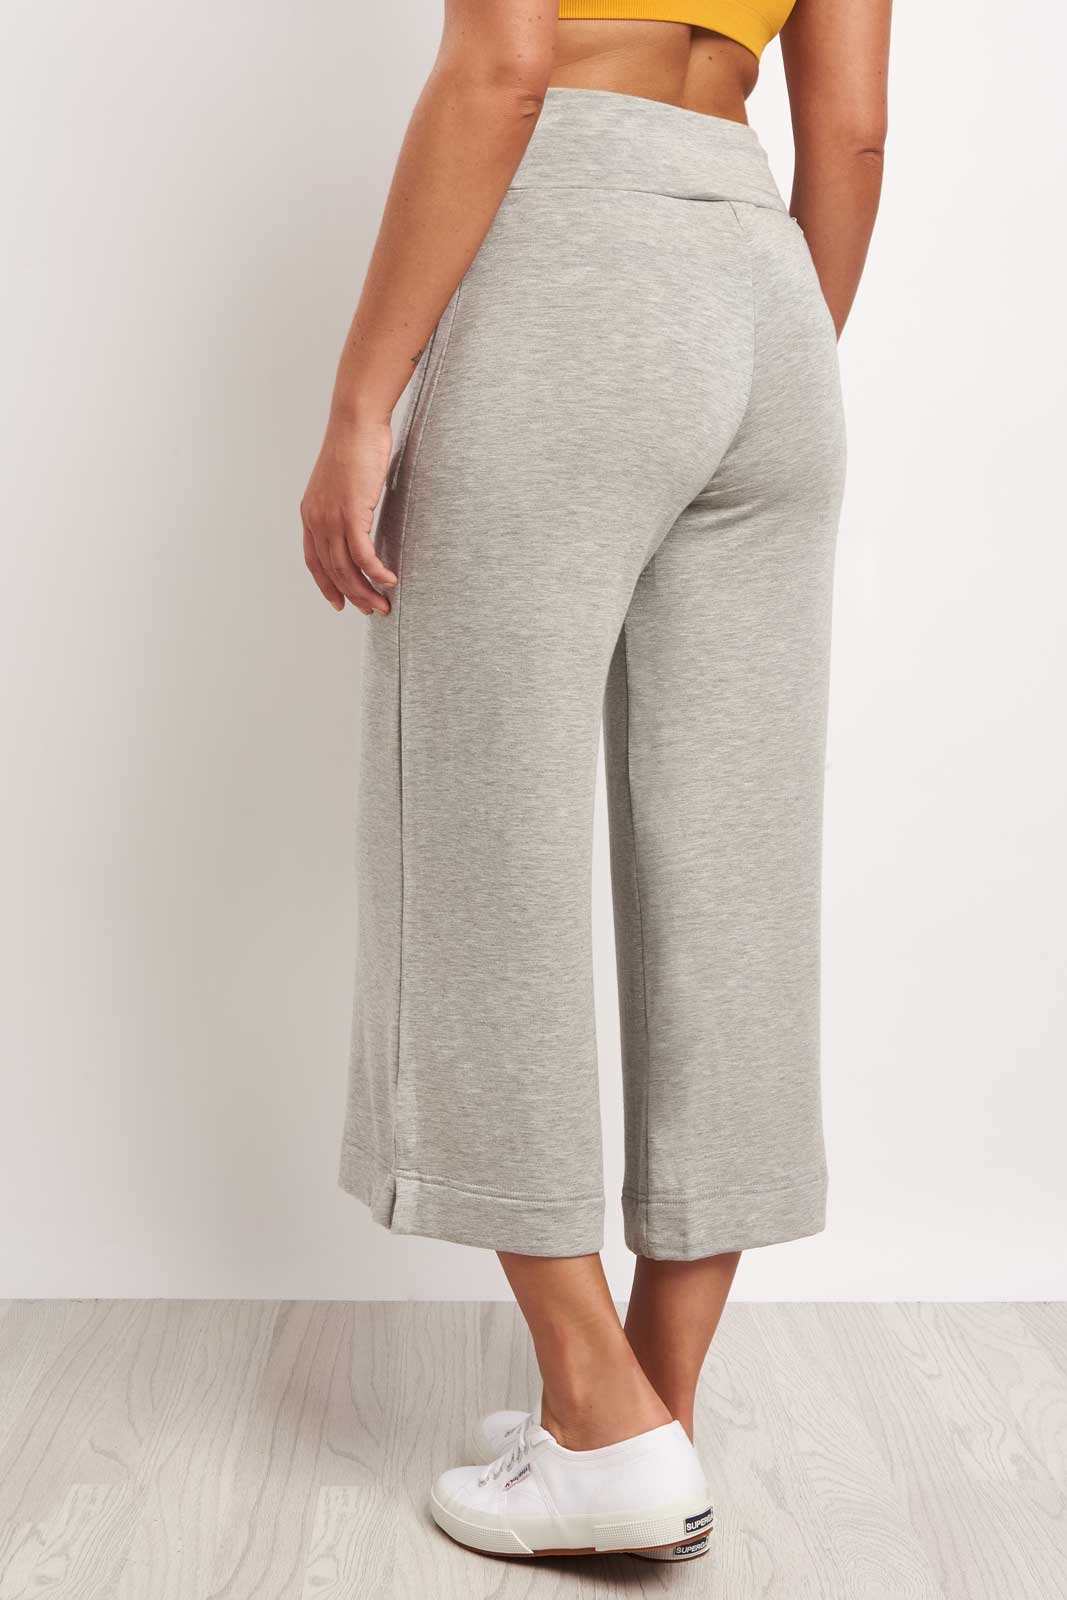 Splits59 Runway Culotte Sweat Grey image 2 - The Sports Edit